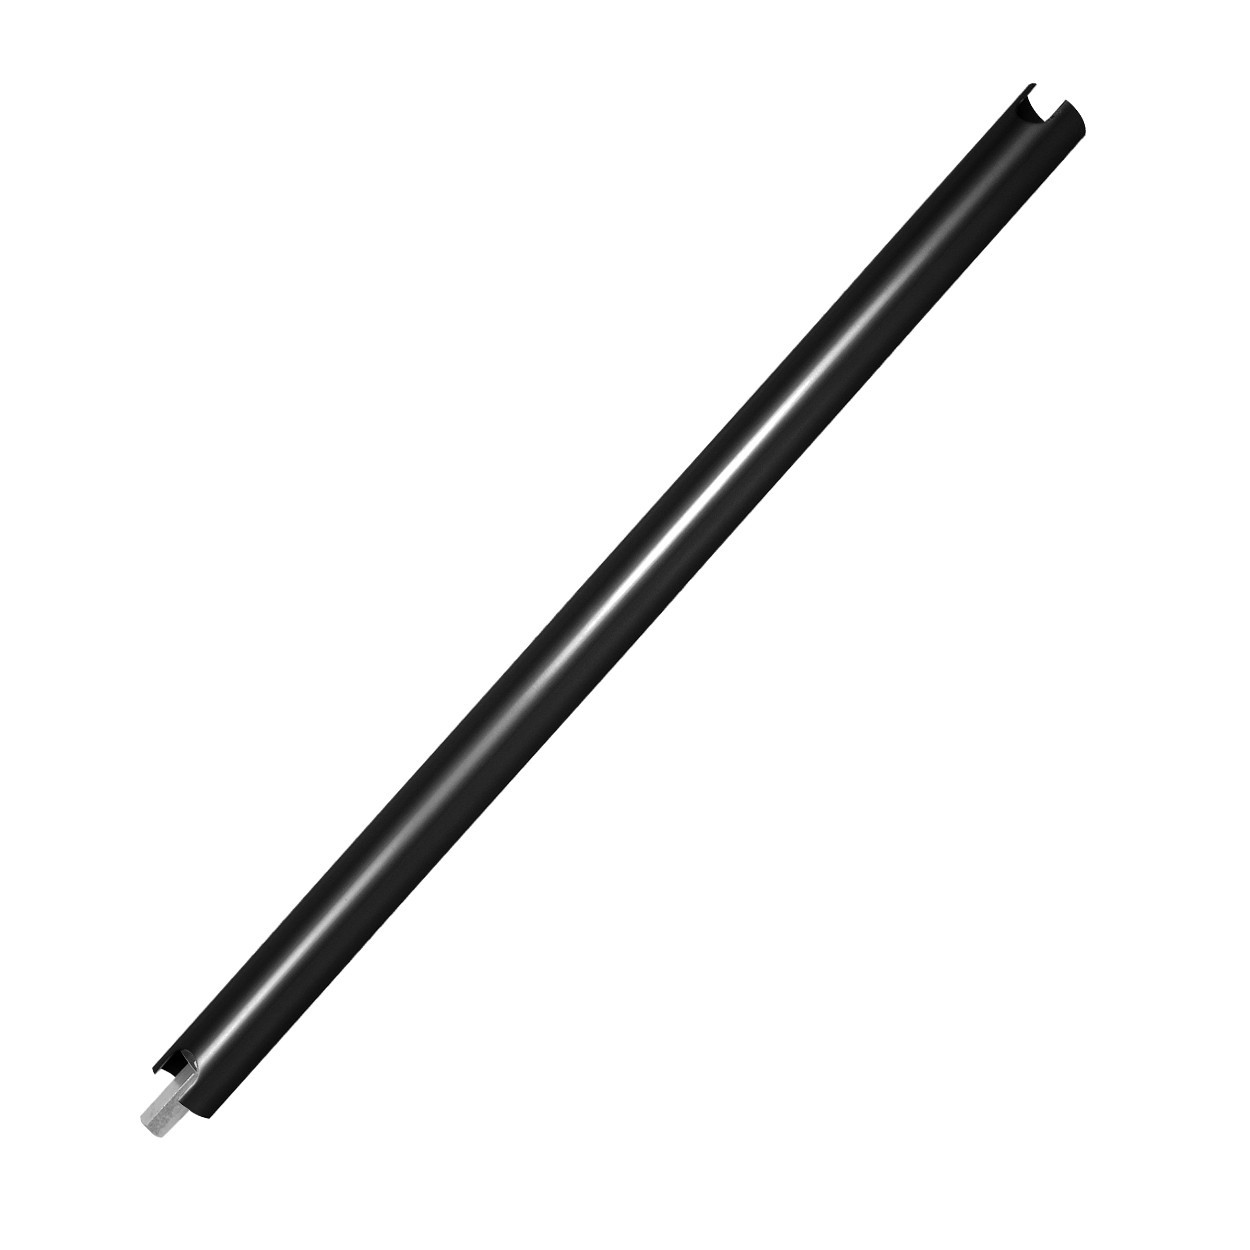 EXTENSOR HI POINT BLACK 800MM